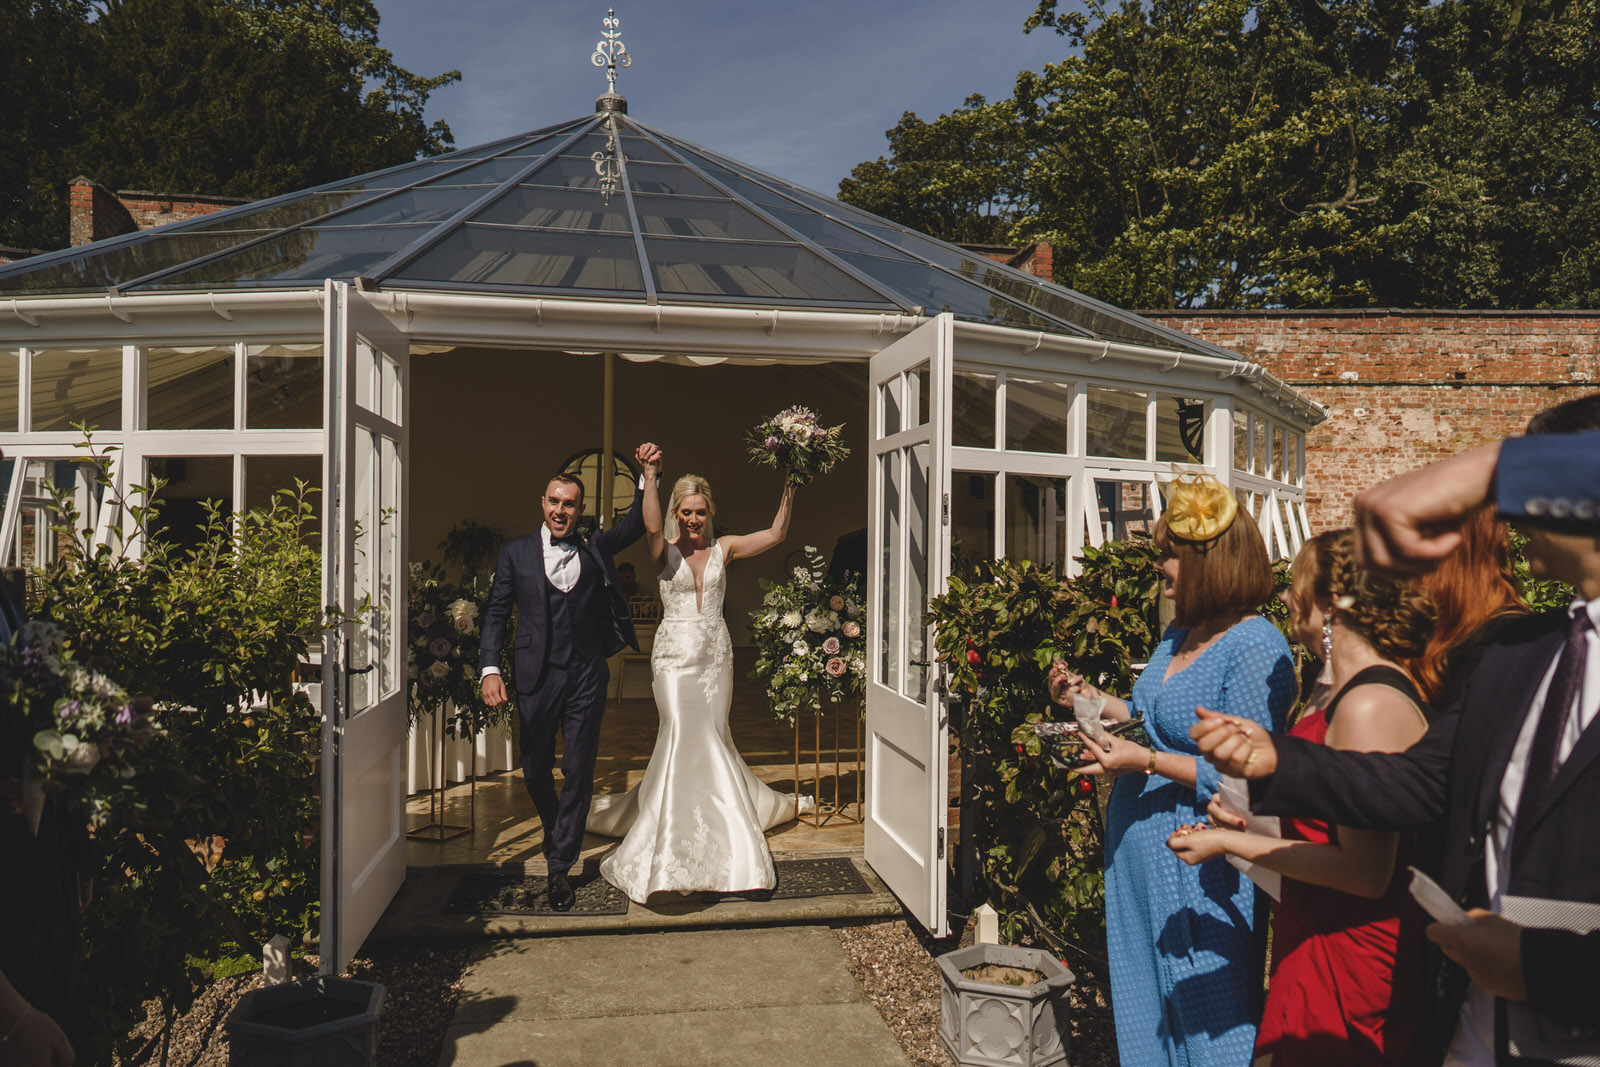 the bride and groom leave the glass house to join their waiting guests and confetti